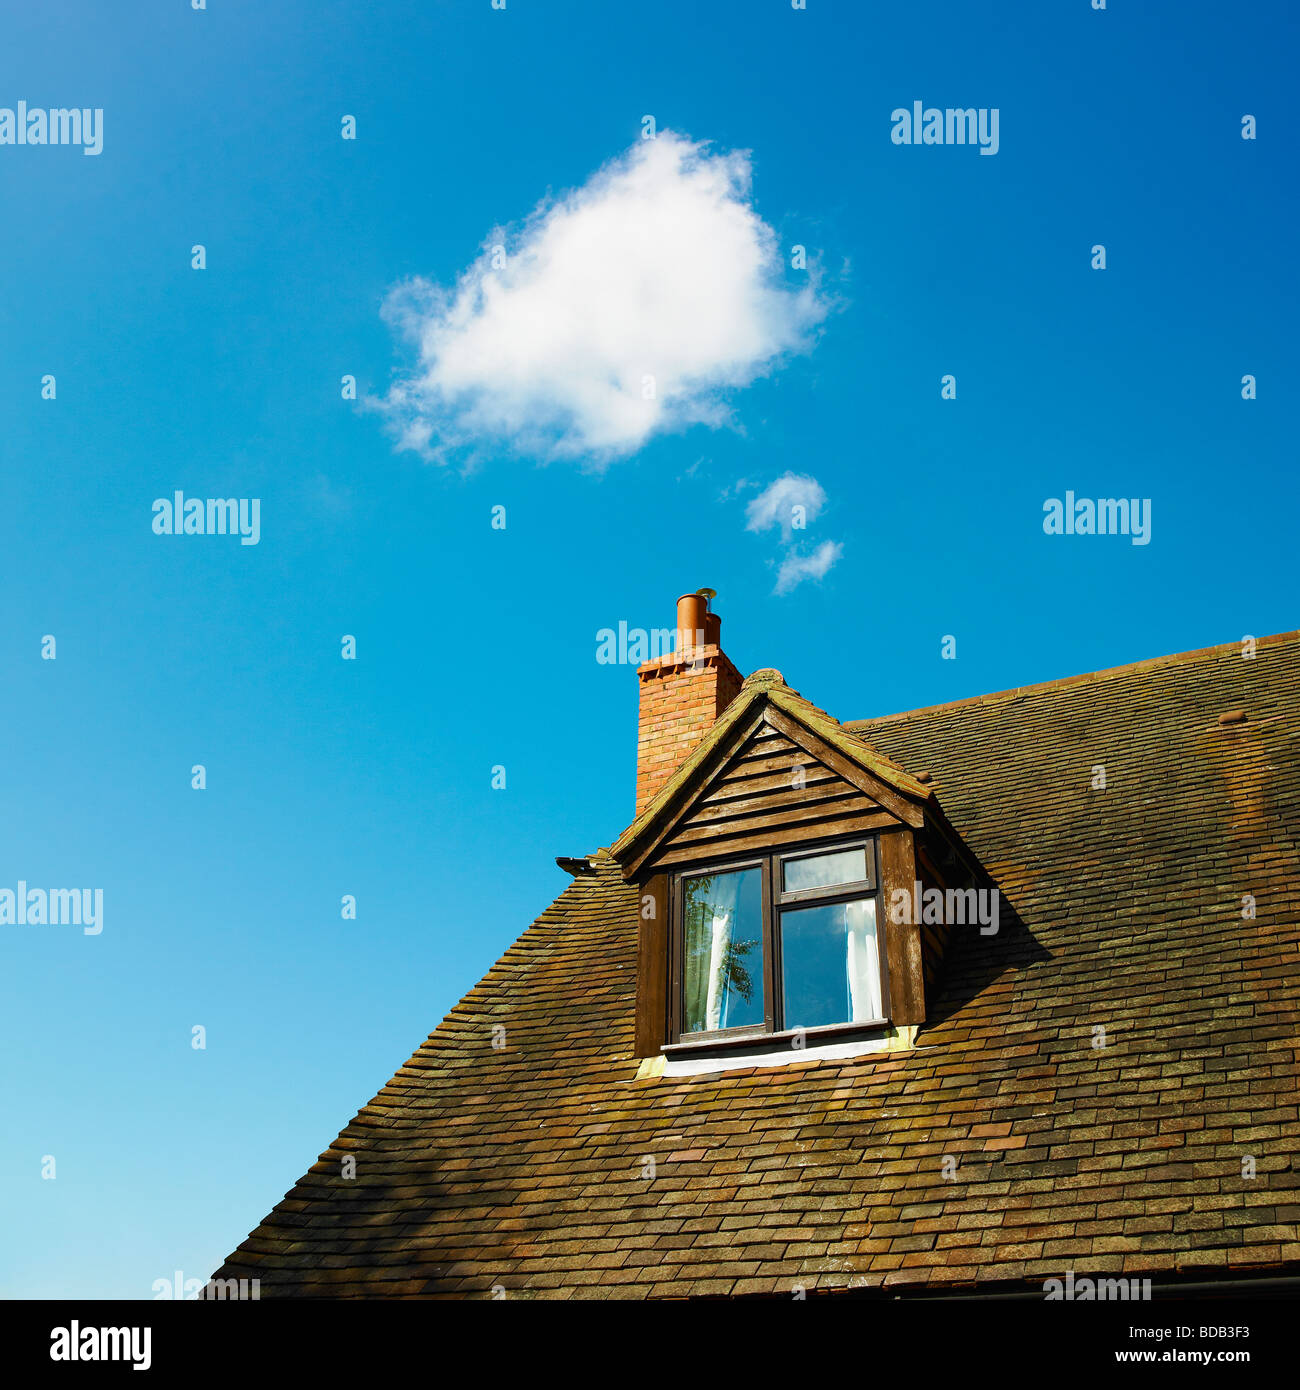 House with cloud and blue sky - cloud computing - home office. - Stock Image